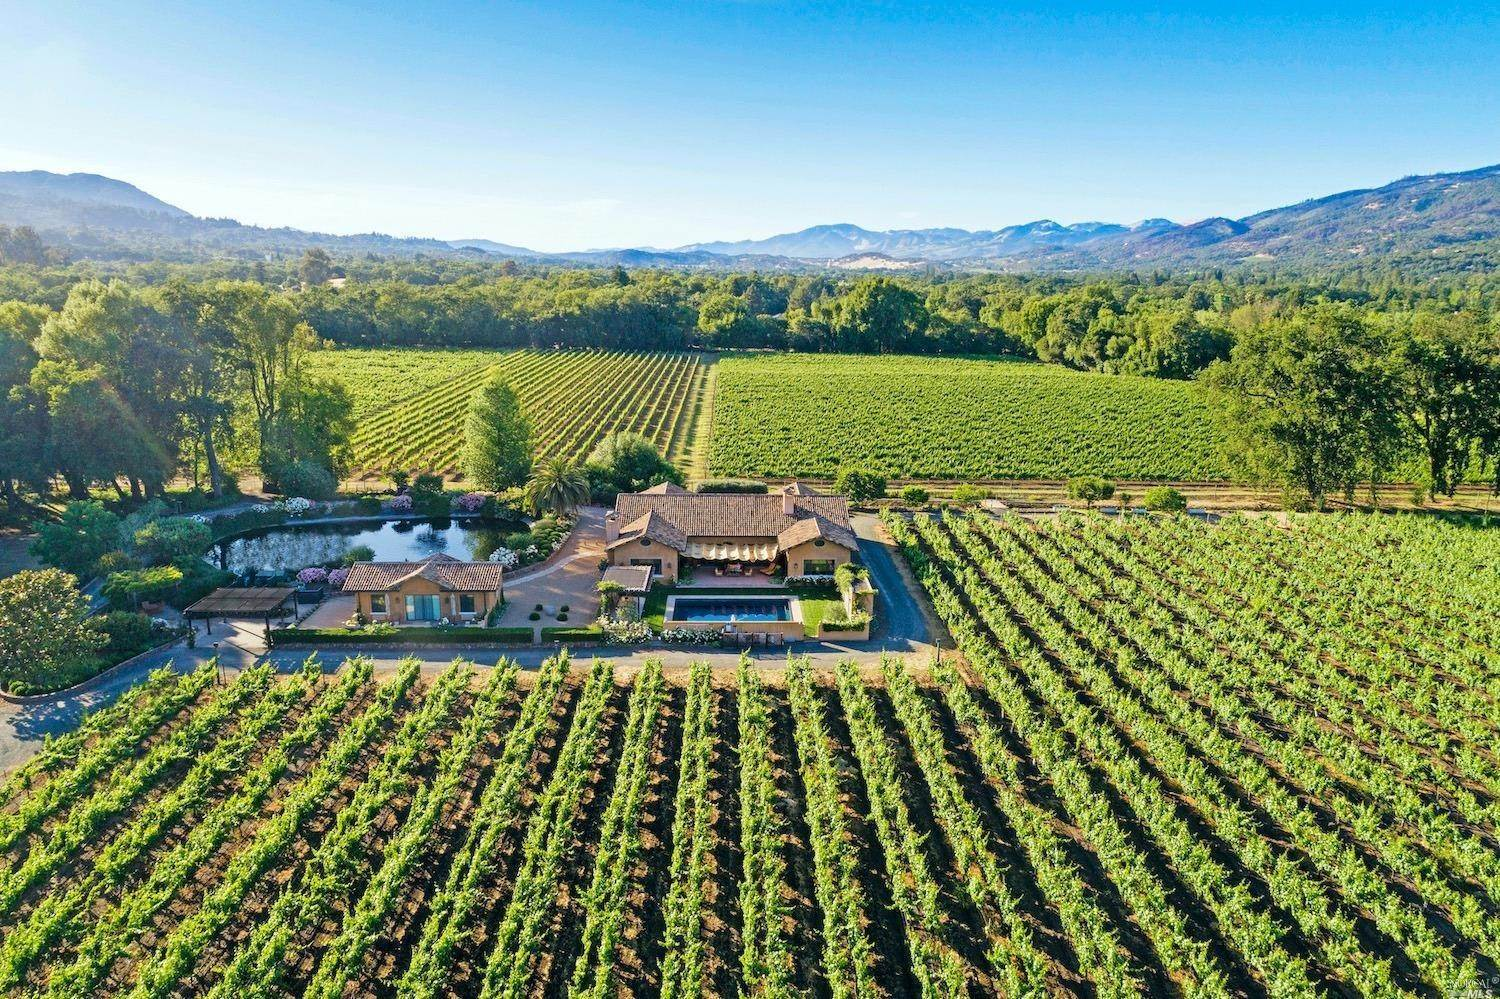 Single Family Homes for Sale at 938 Country Club Lane Sonoma, California 95476 United States